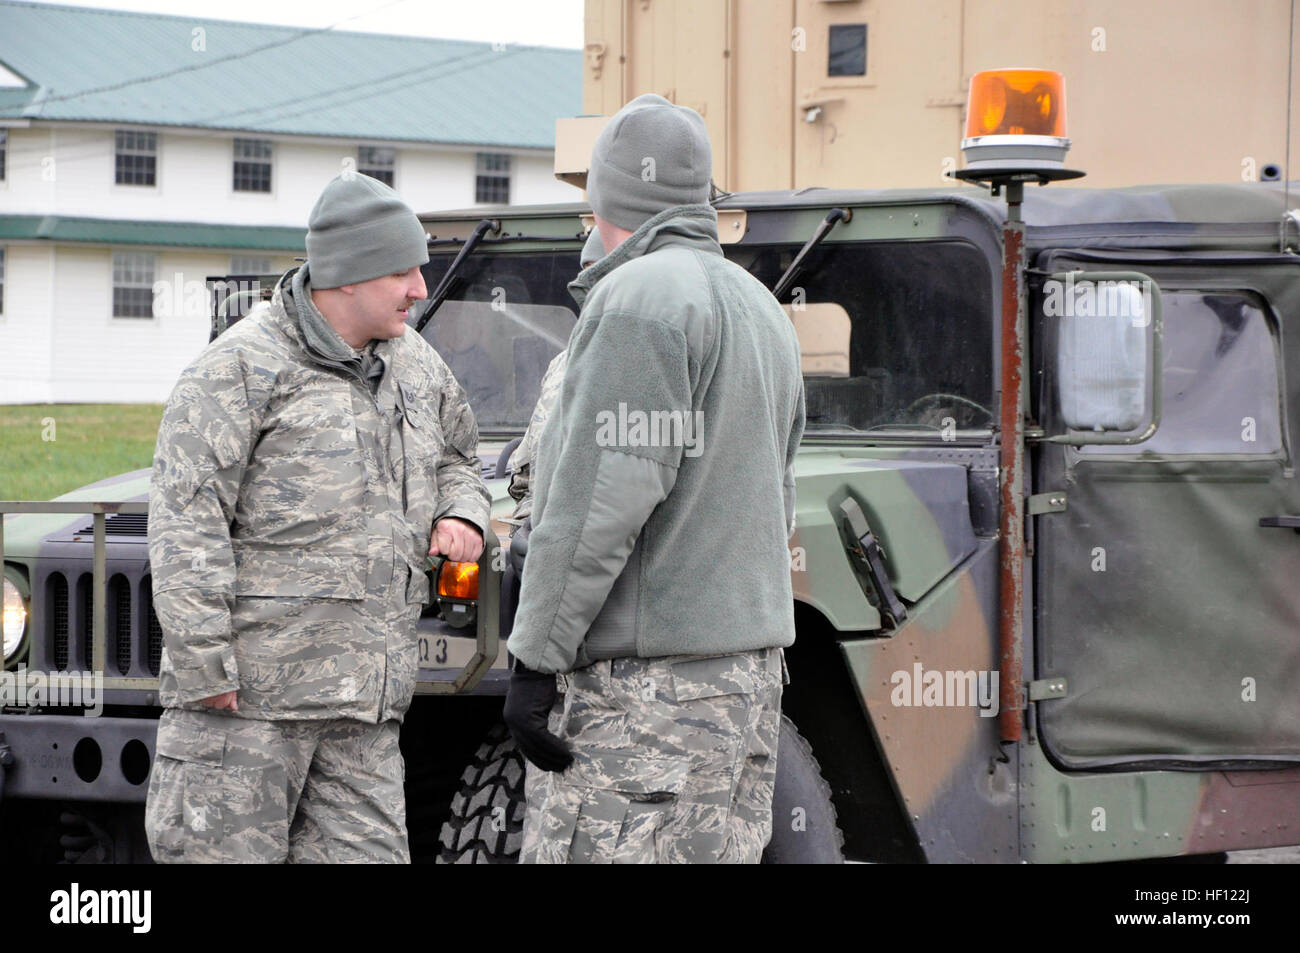 US-Soldaten mit der 28. Military Police Company, Pennsylvania Army National Guard, Vorbereiten von Fort Indiantown Stockfoto